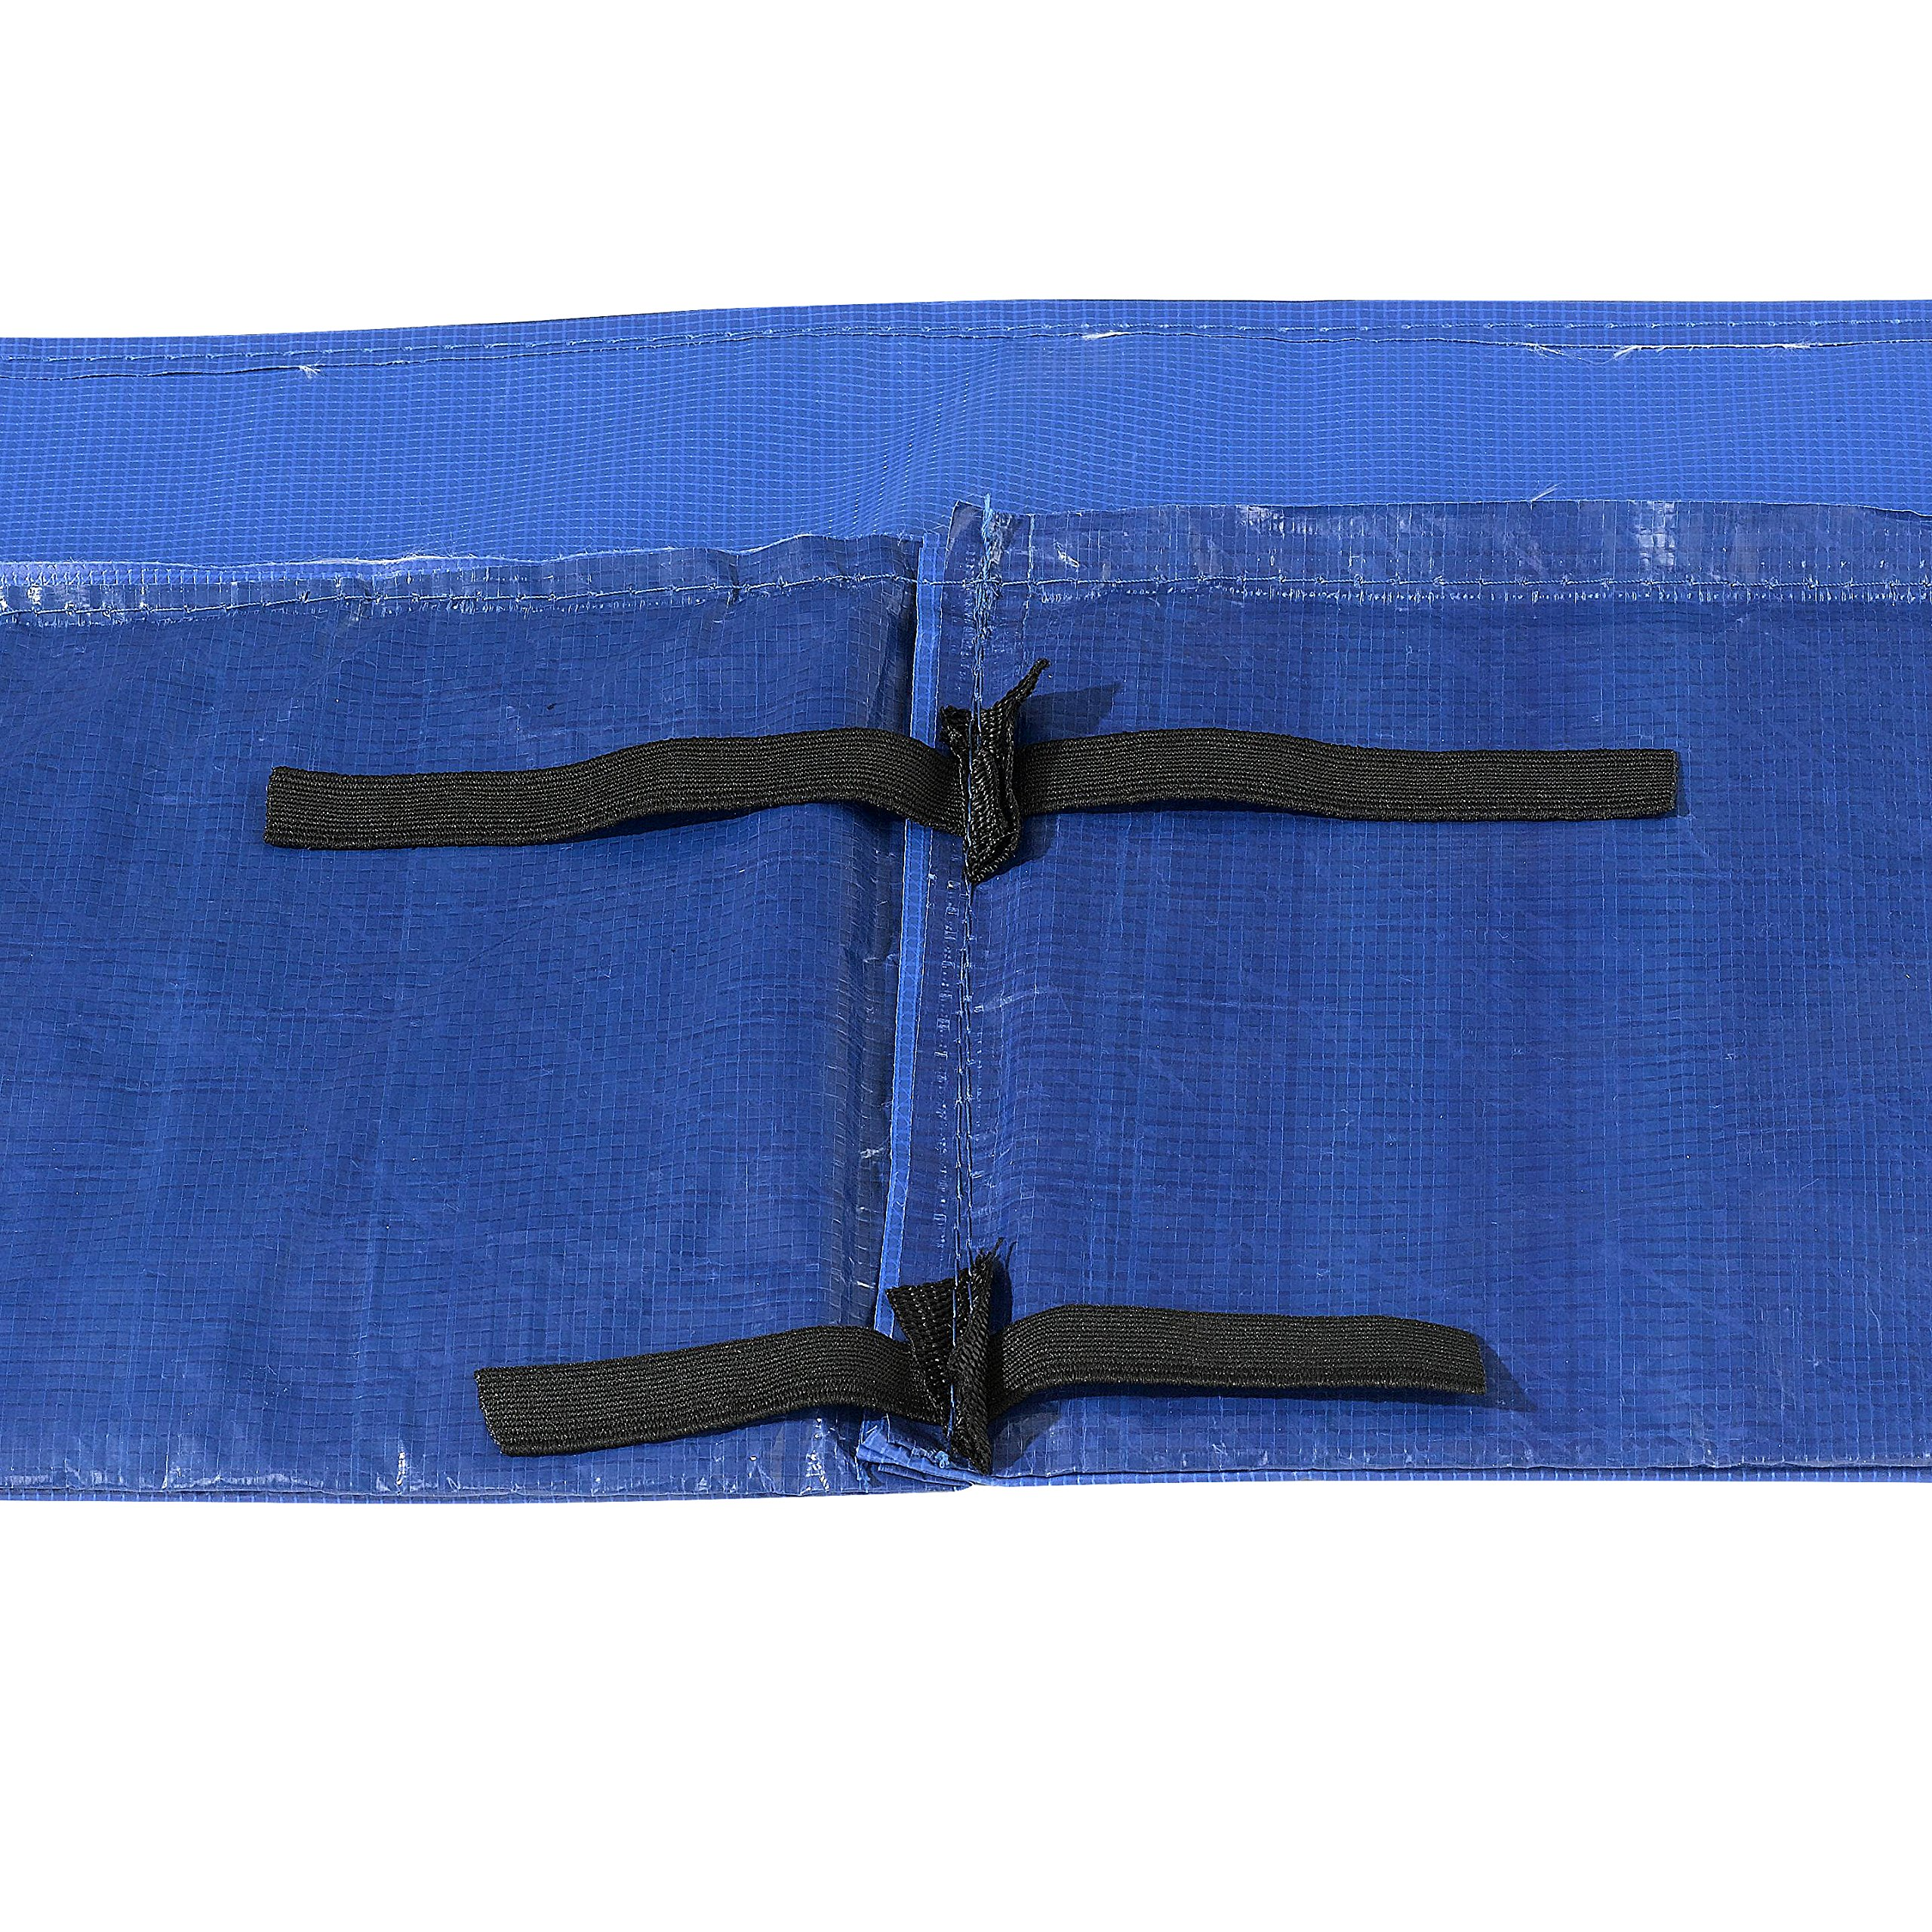 Upper Bounce Super Trampoline Replacement Safety Pad (Spring Cover) for 9' x 15' Rectangular Frames, Blue by Upper Bounce (Image #2)